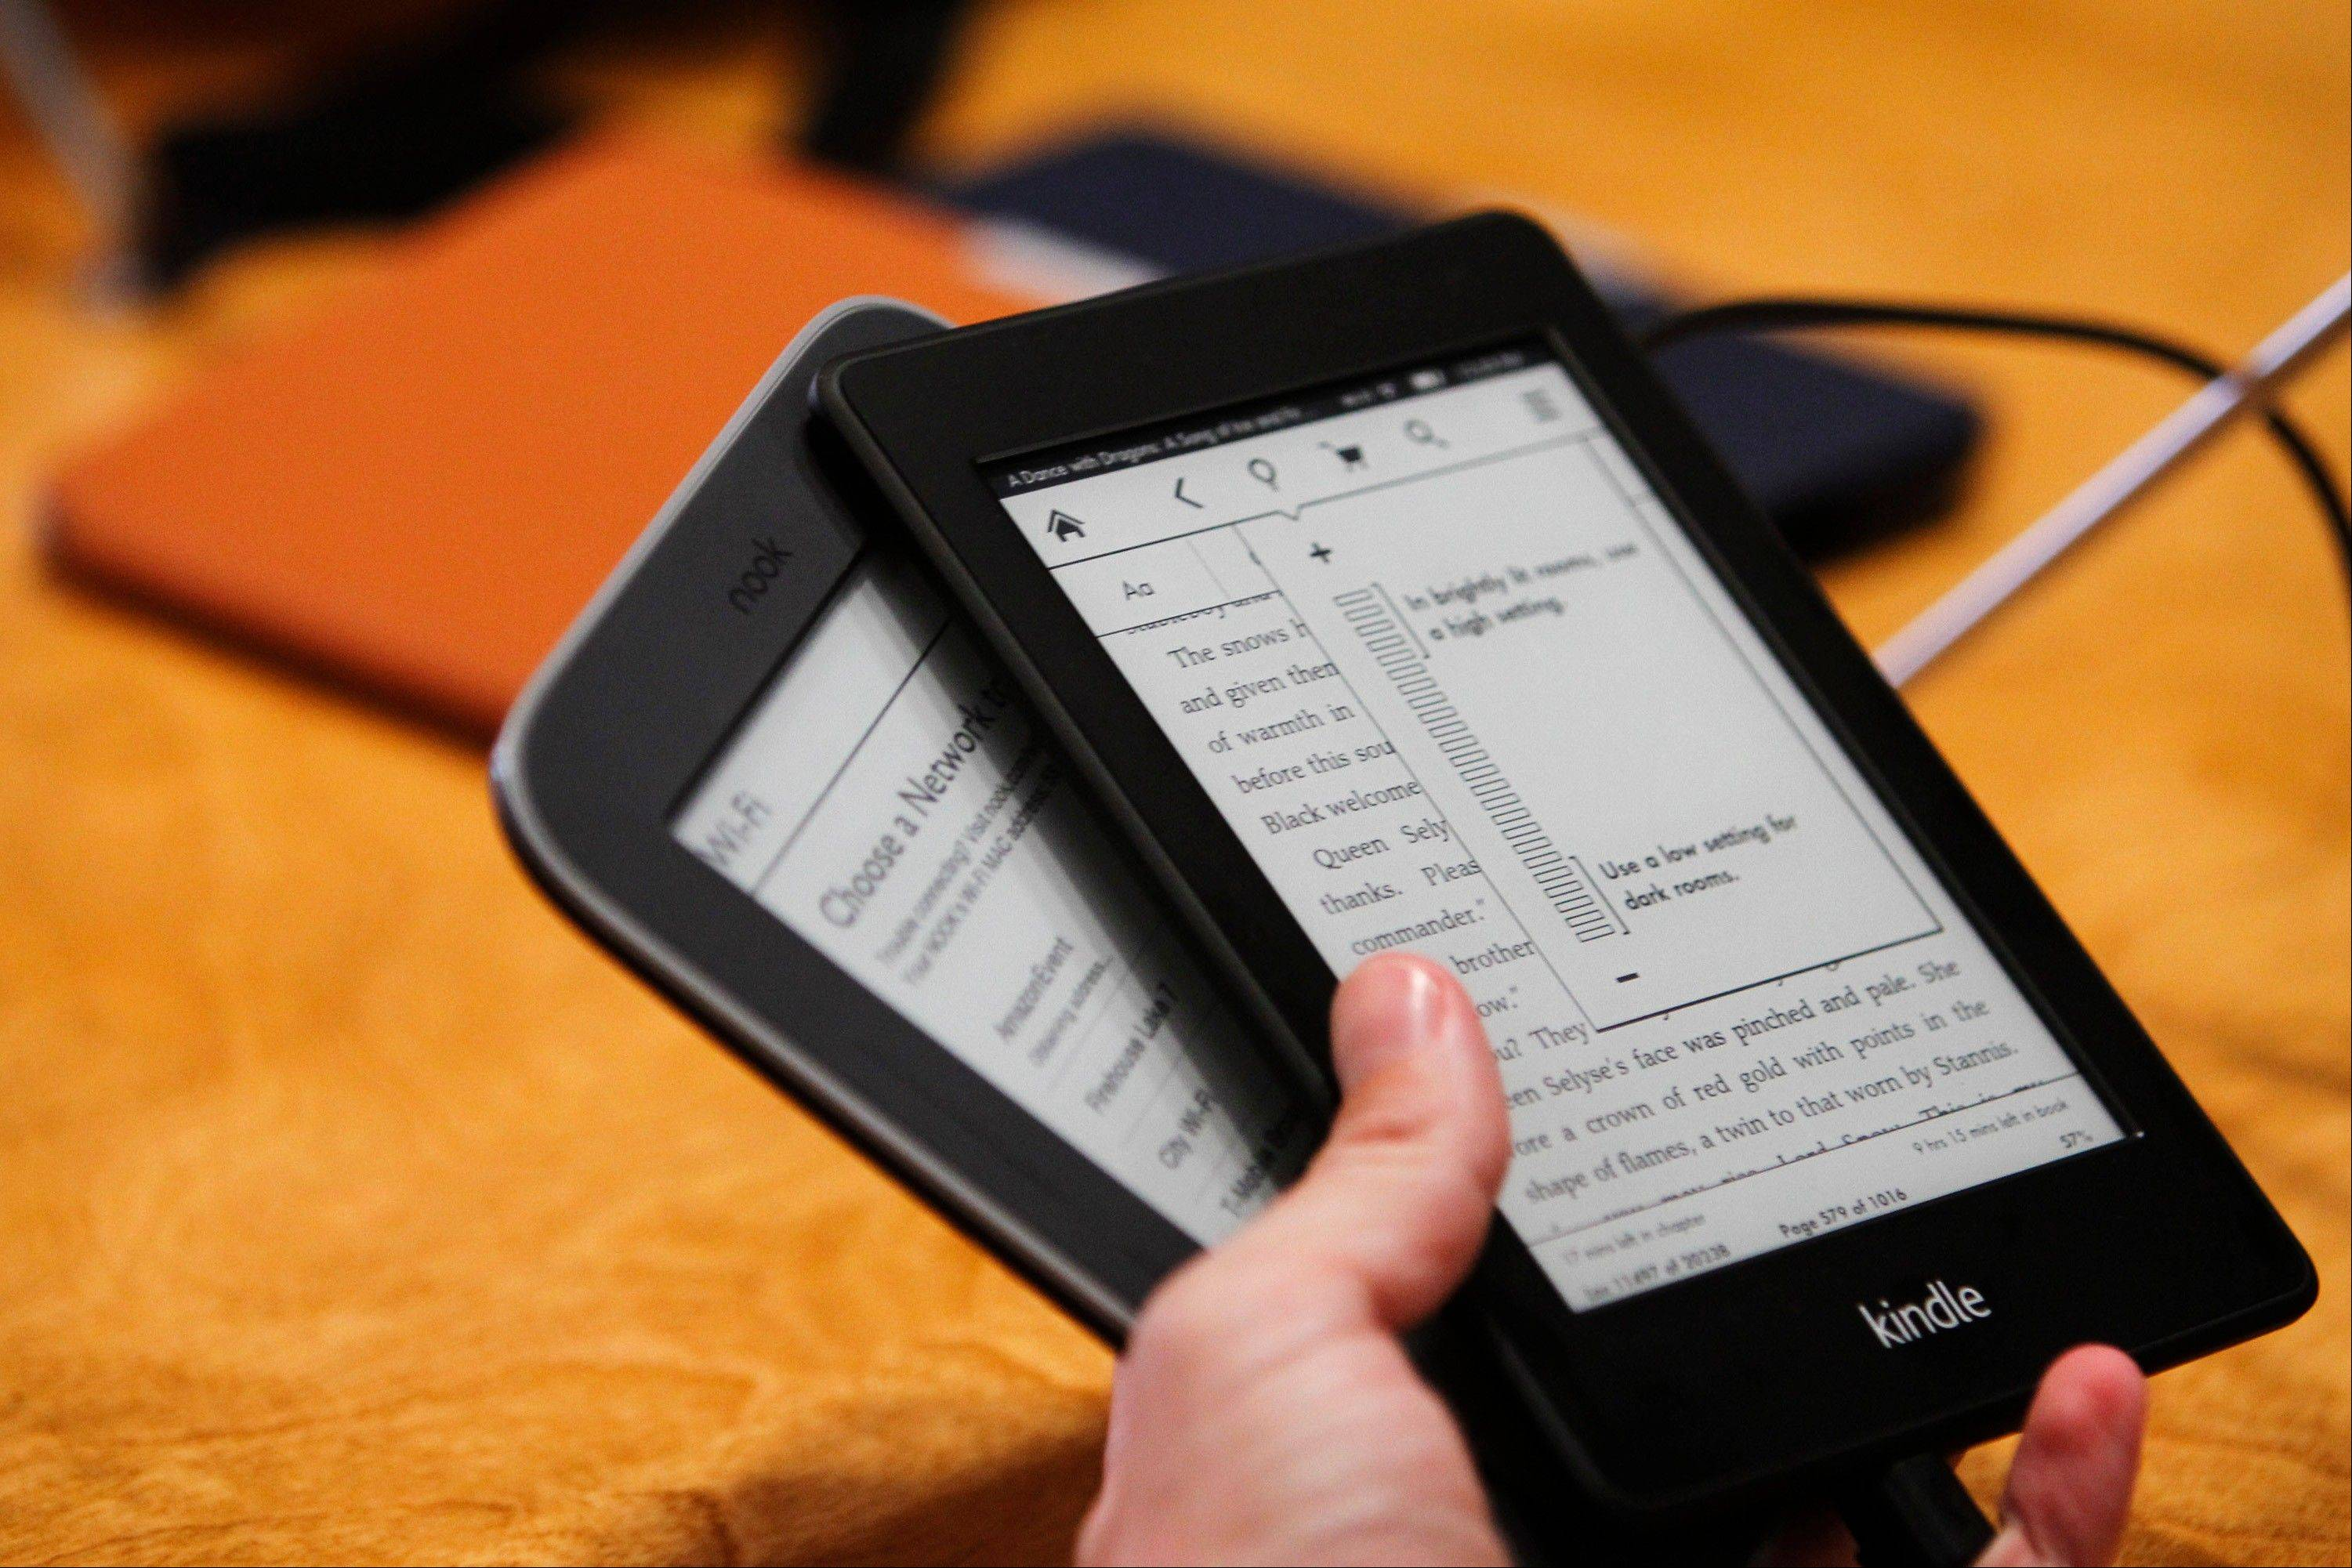 Wal-Mart will no longer sell the Amazon.com Kindle, seen at right, the chain announced Thursday.